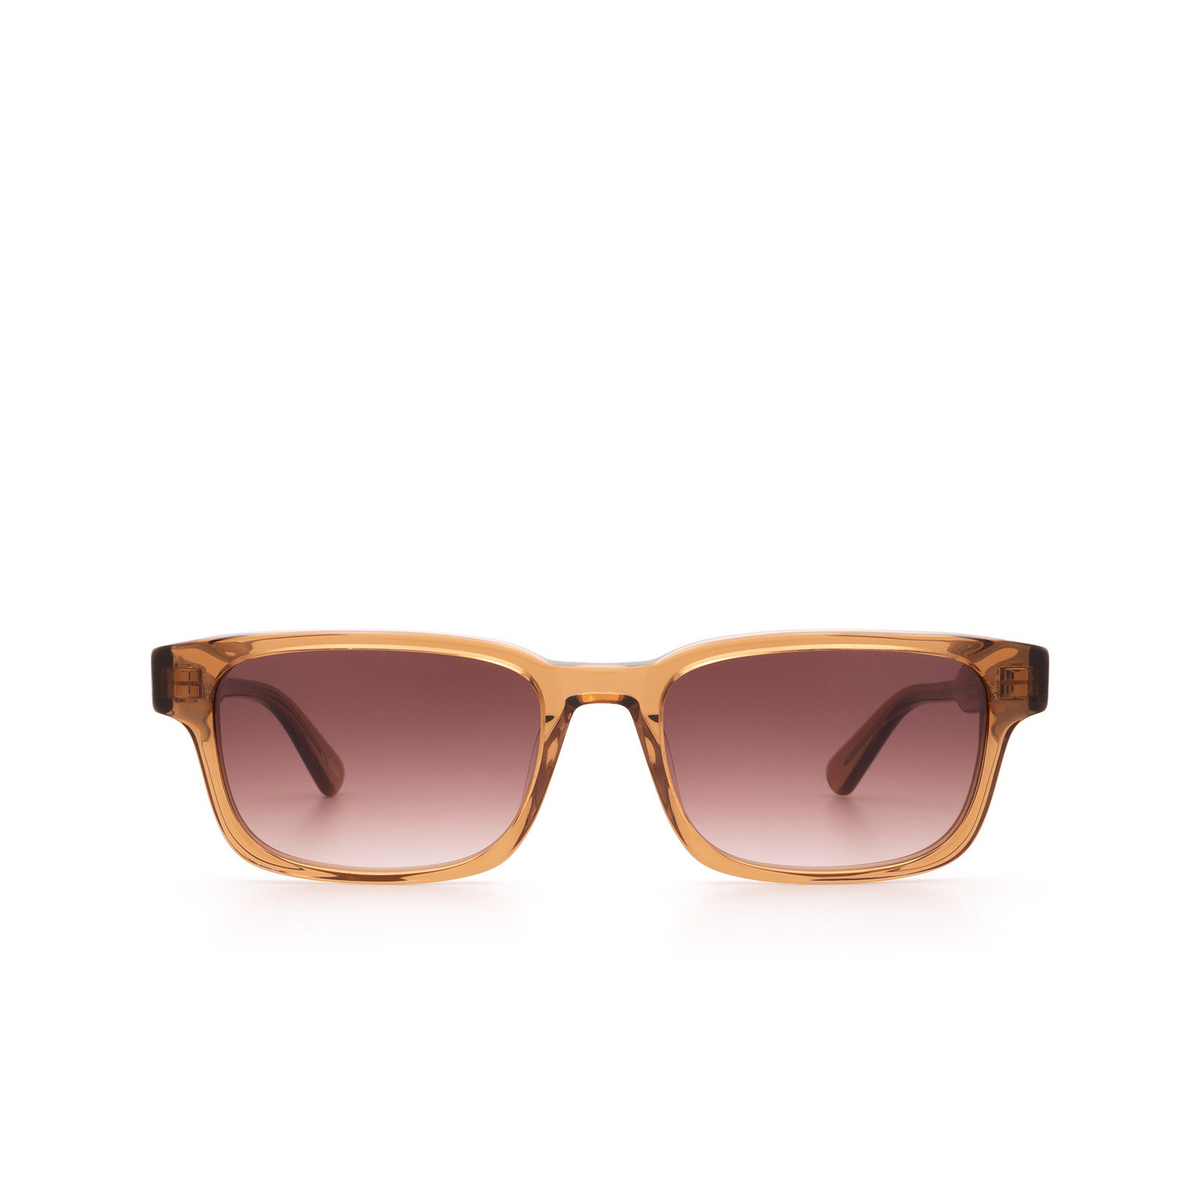 Chimi® Rectangle Sunglasses: #106 color Brown Cinnamon Brown - front view.